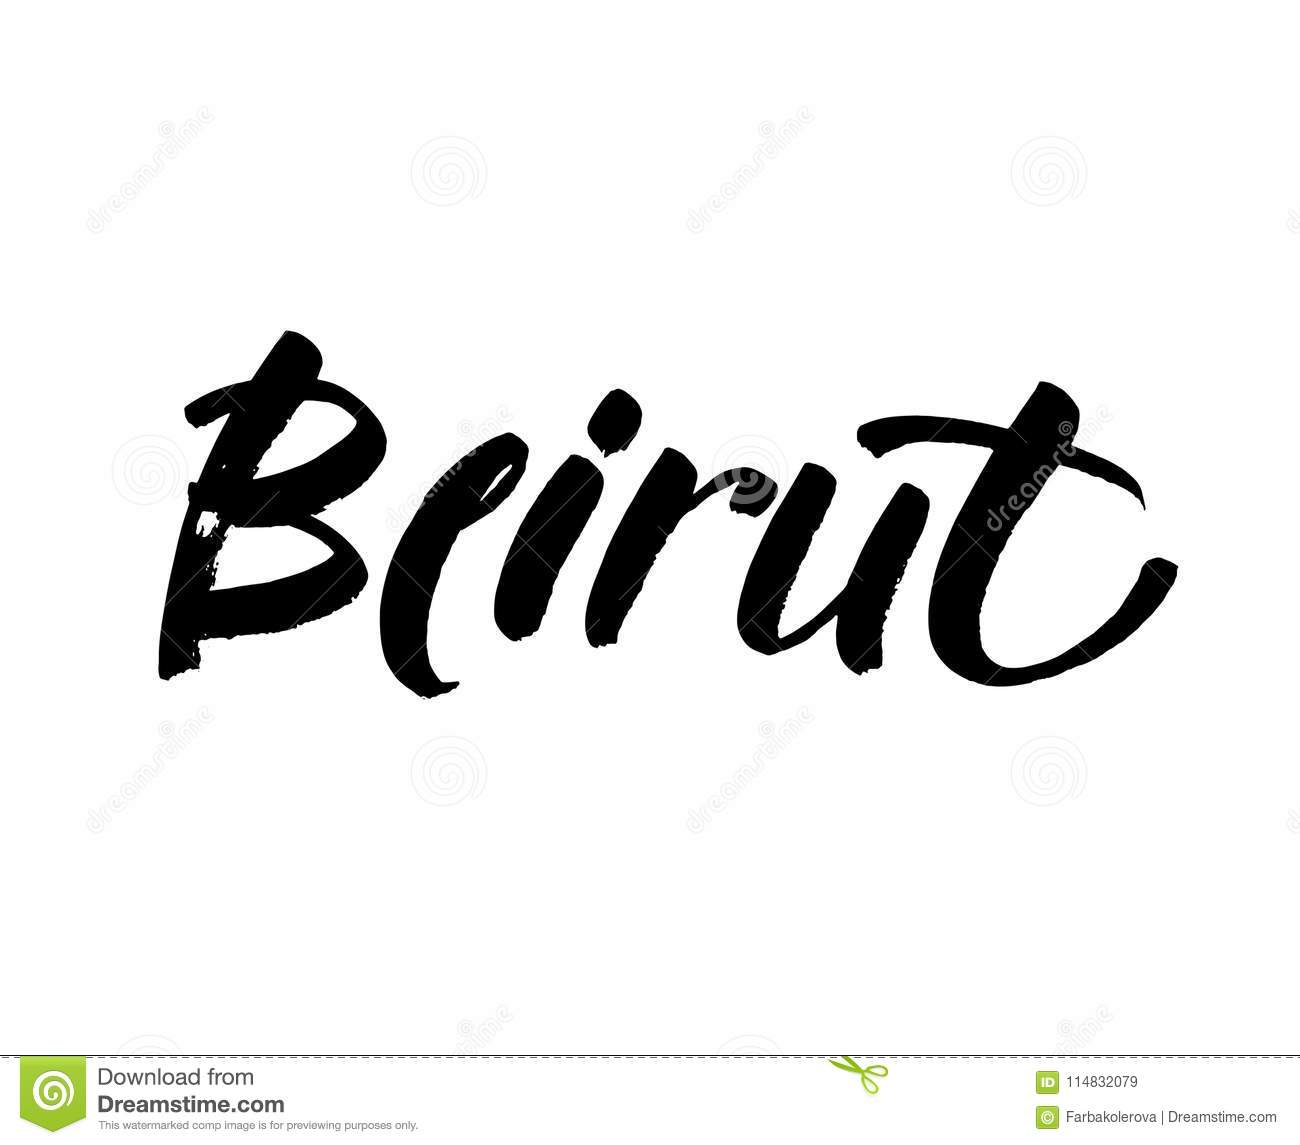 Download Beirut Capital City Typography Lettering Design Hand Drawn Brush Calligraphy Text For Greeting